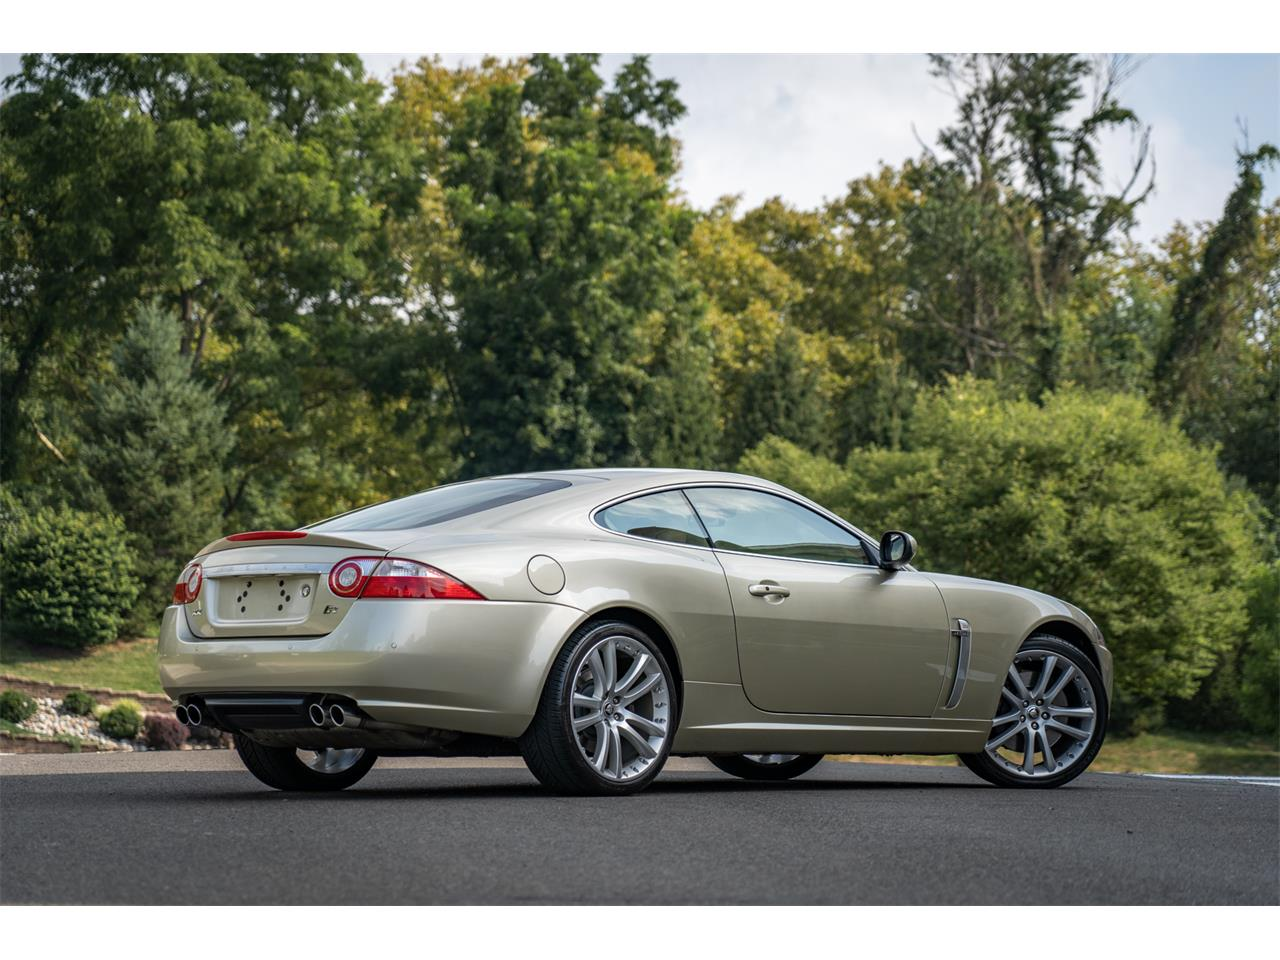 Large Picture of 2008 XKR located in Doylestown Pennsylvania Auction Vehicle Offered by Bring A Trailer - QQG3